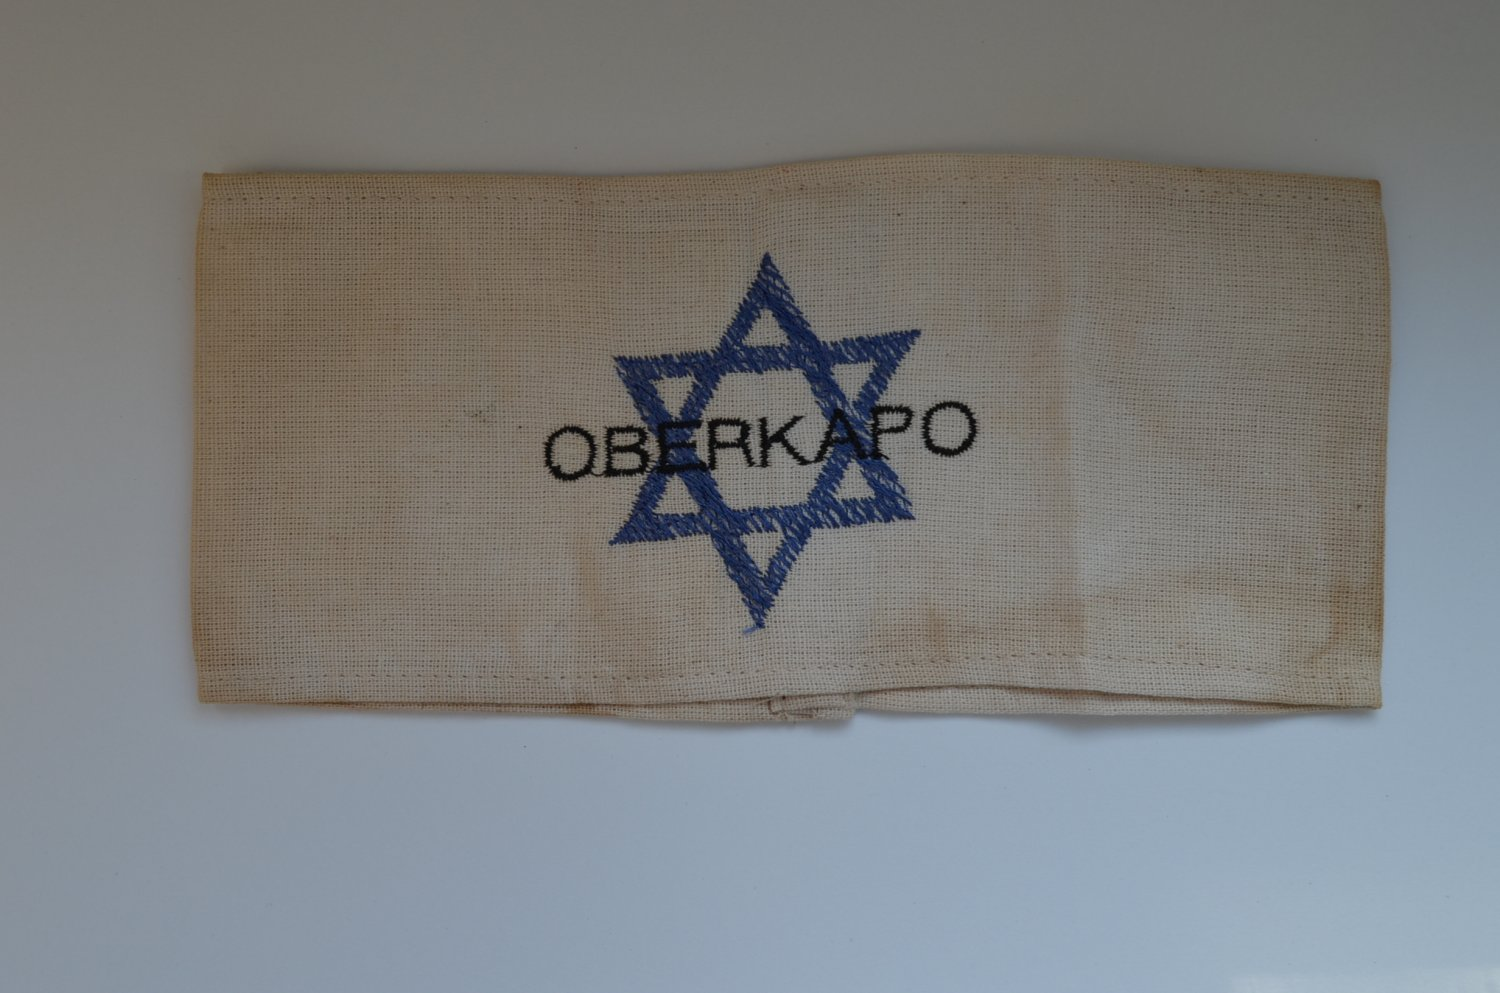 WWII THE JEWISH ARMBAND WITH THE CONCENTRATION CAMP OBERKAPO